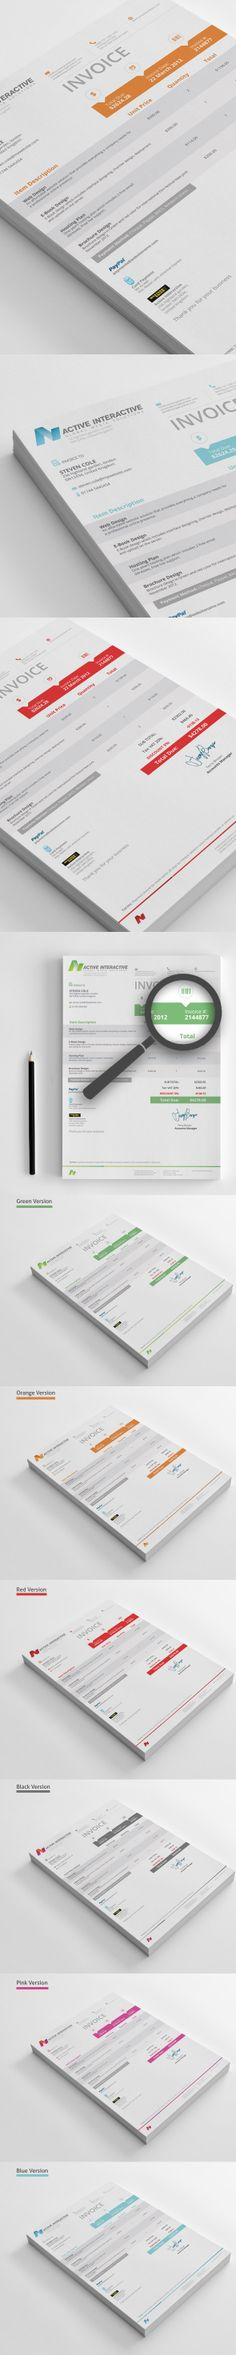 Ceative Invoices